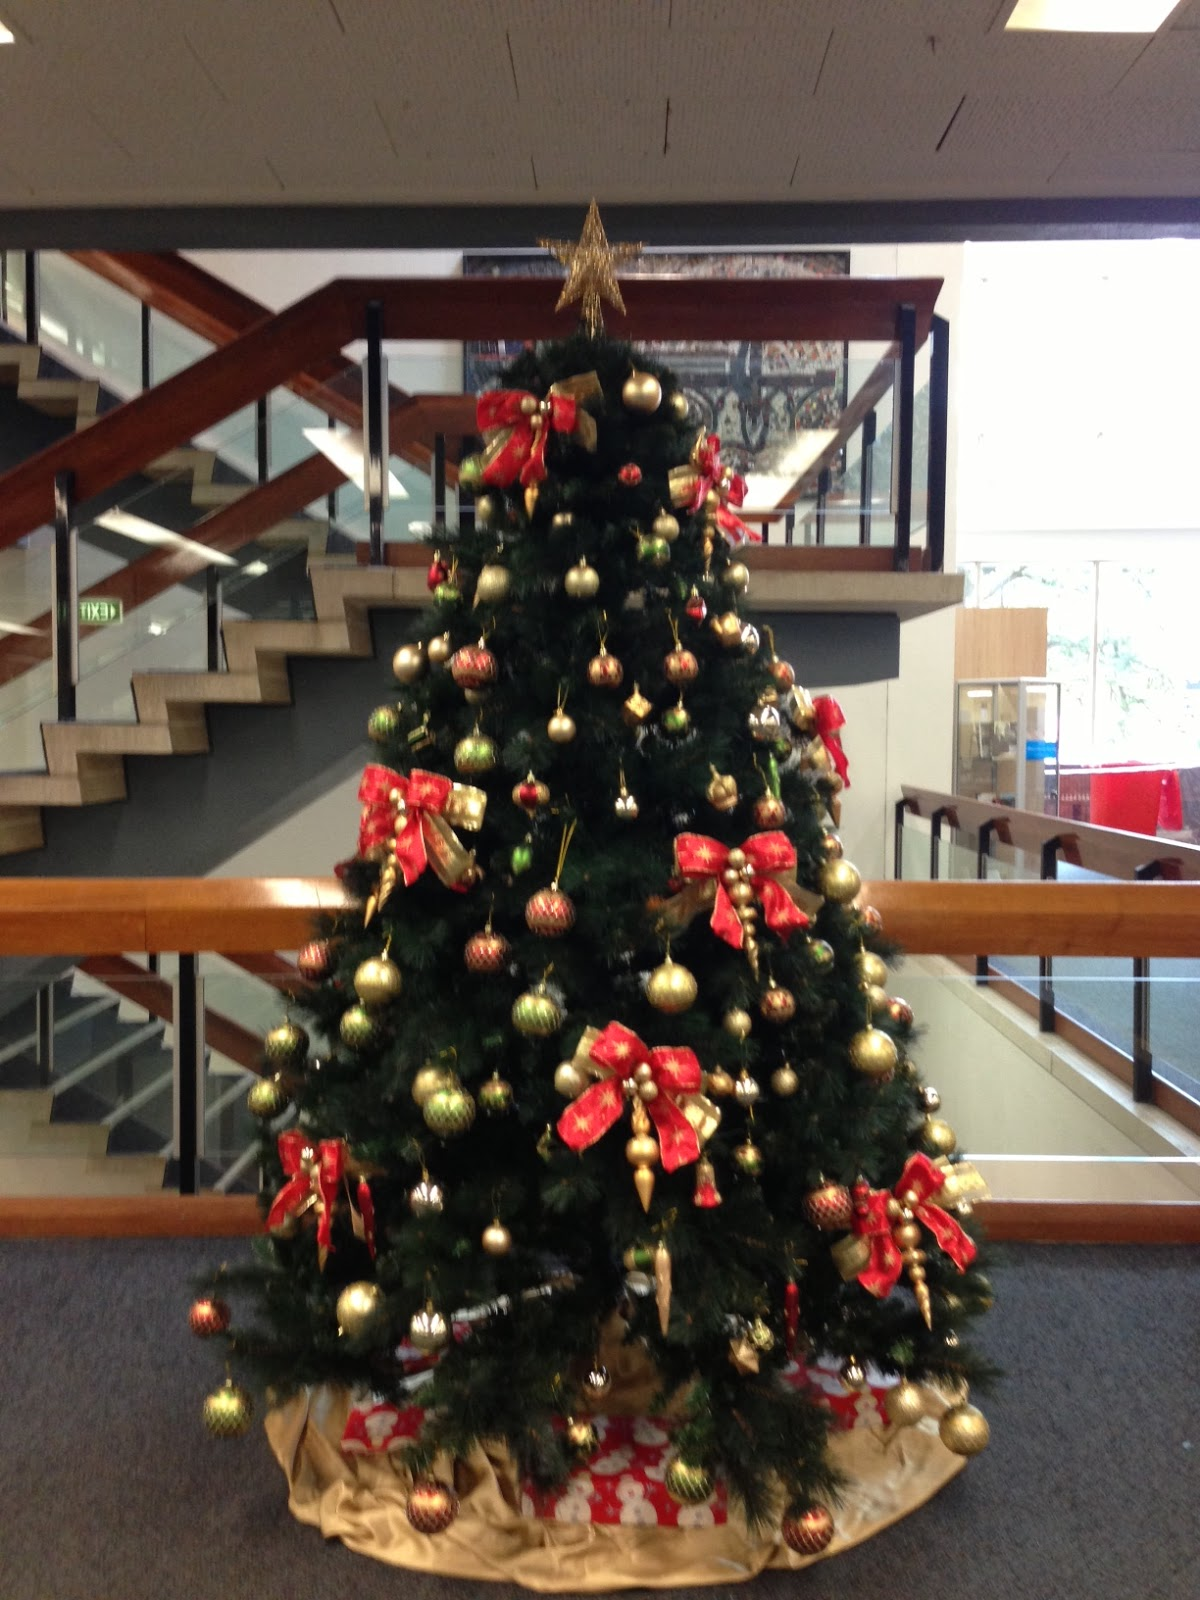 The first of many corporate Christmas trees went up in the main foyer. It  didn't do anything to me, it looks like any Christmas tree you see at work  places.